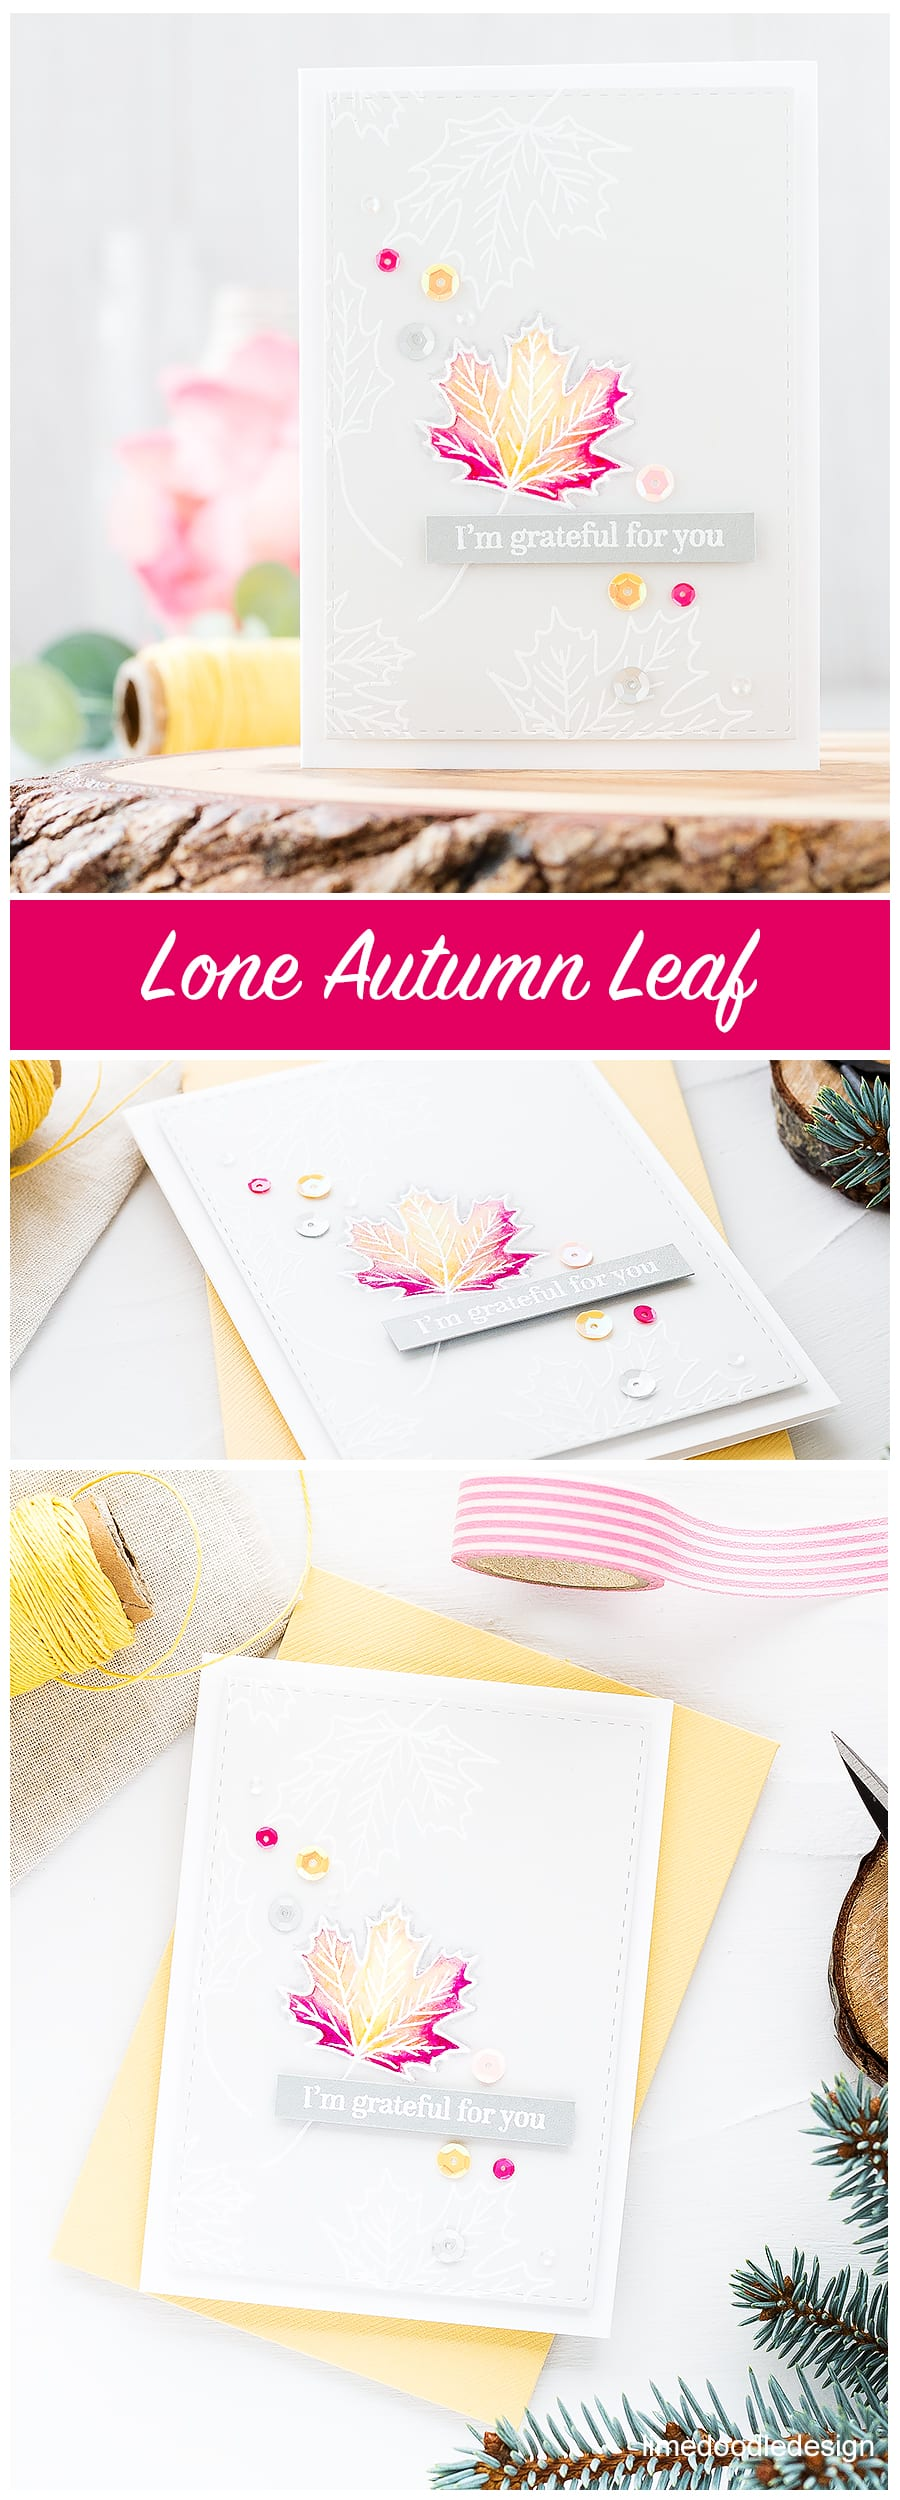 Lone autumn leaf. I'm grateful for you. Find out more about this card by clicking on the following link: https://limedoodledesign.com/2016/09/lone-autumn-leaf-altenew-stamptember/